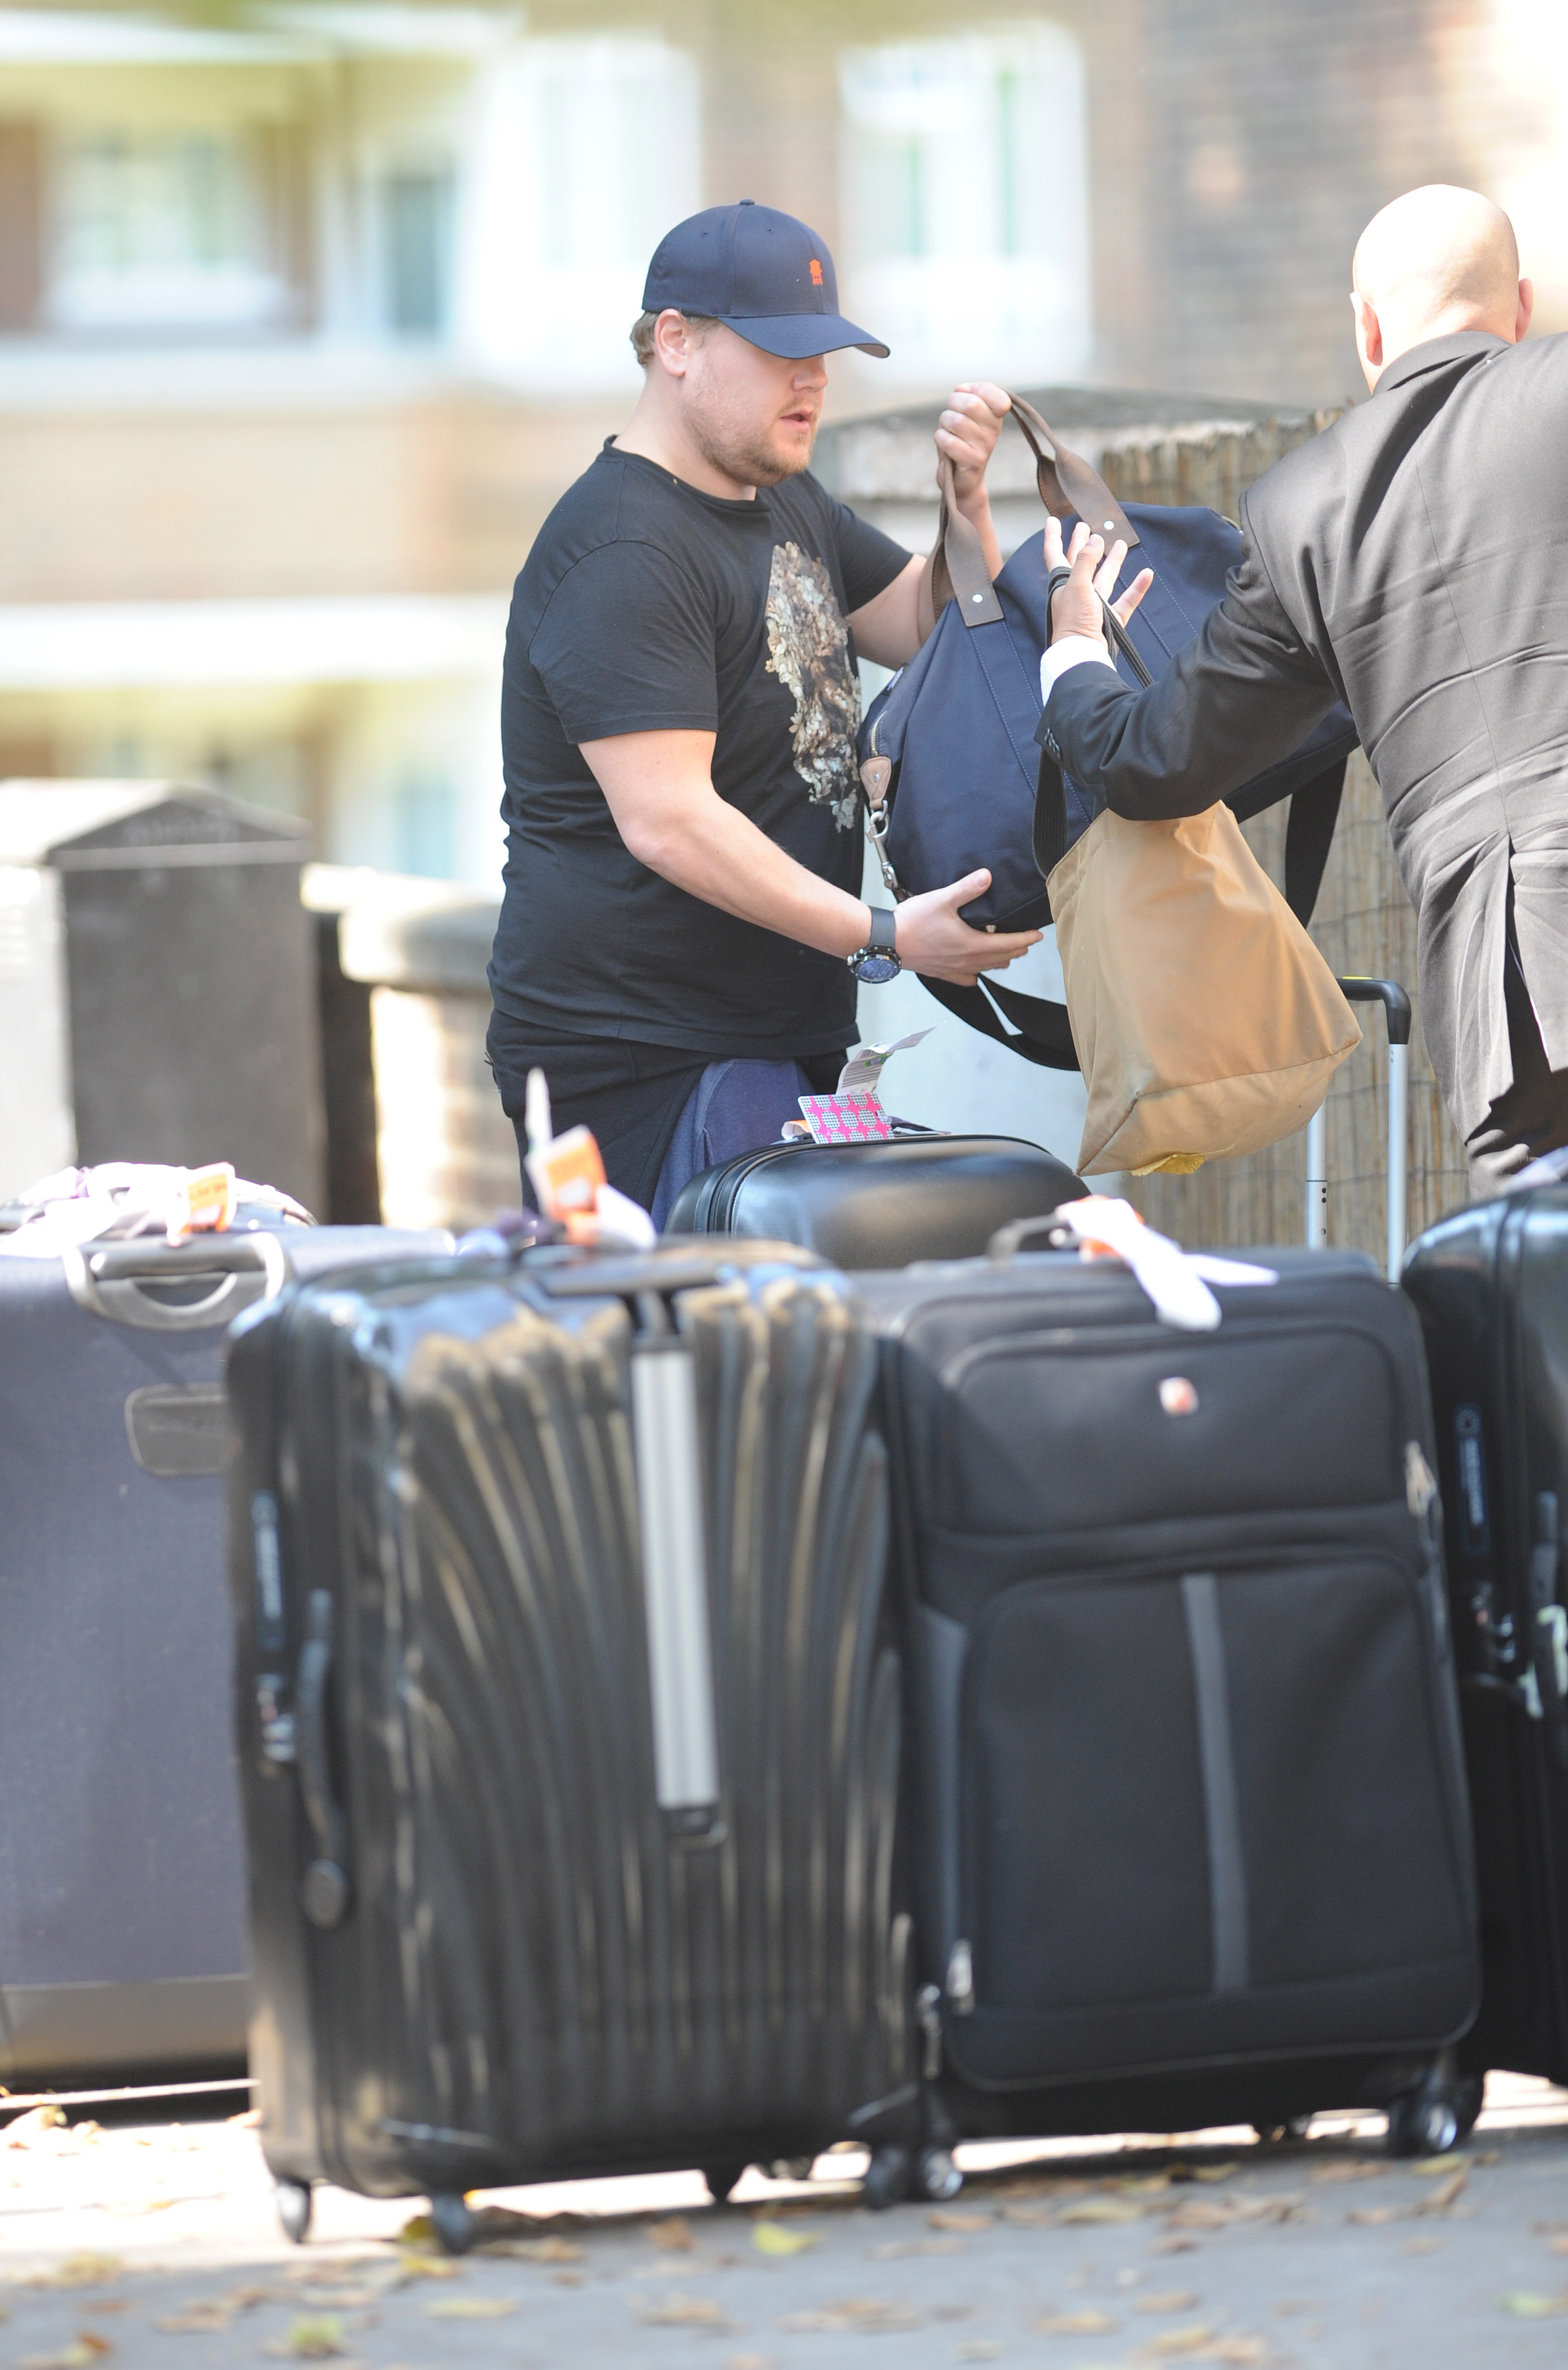 Owns more luggage than the Queen